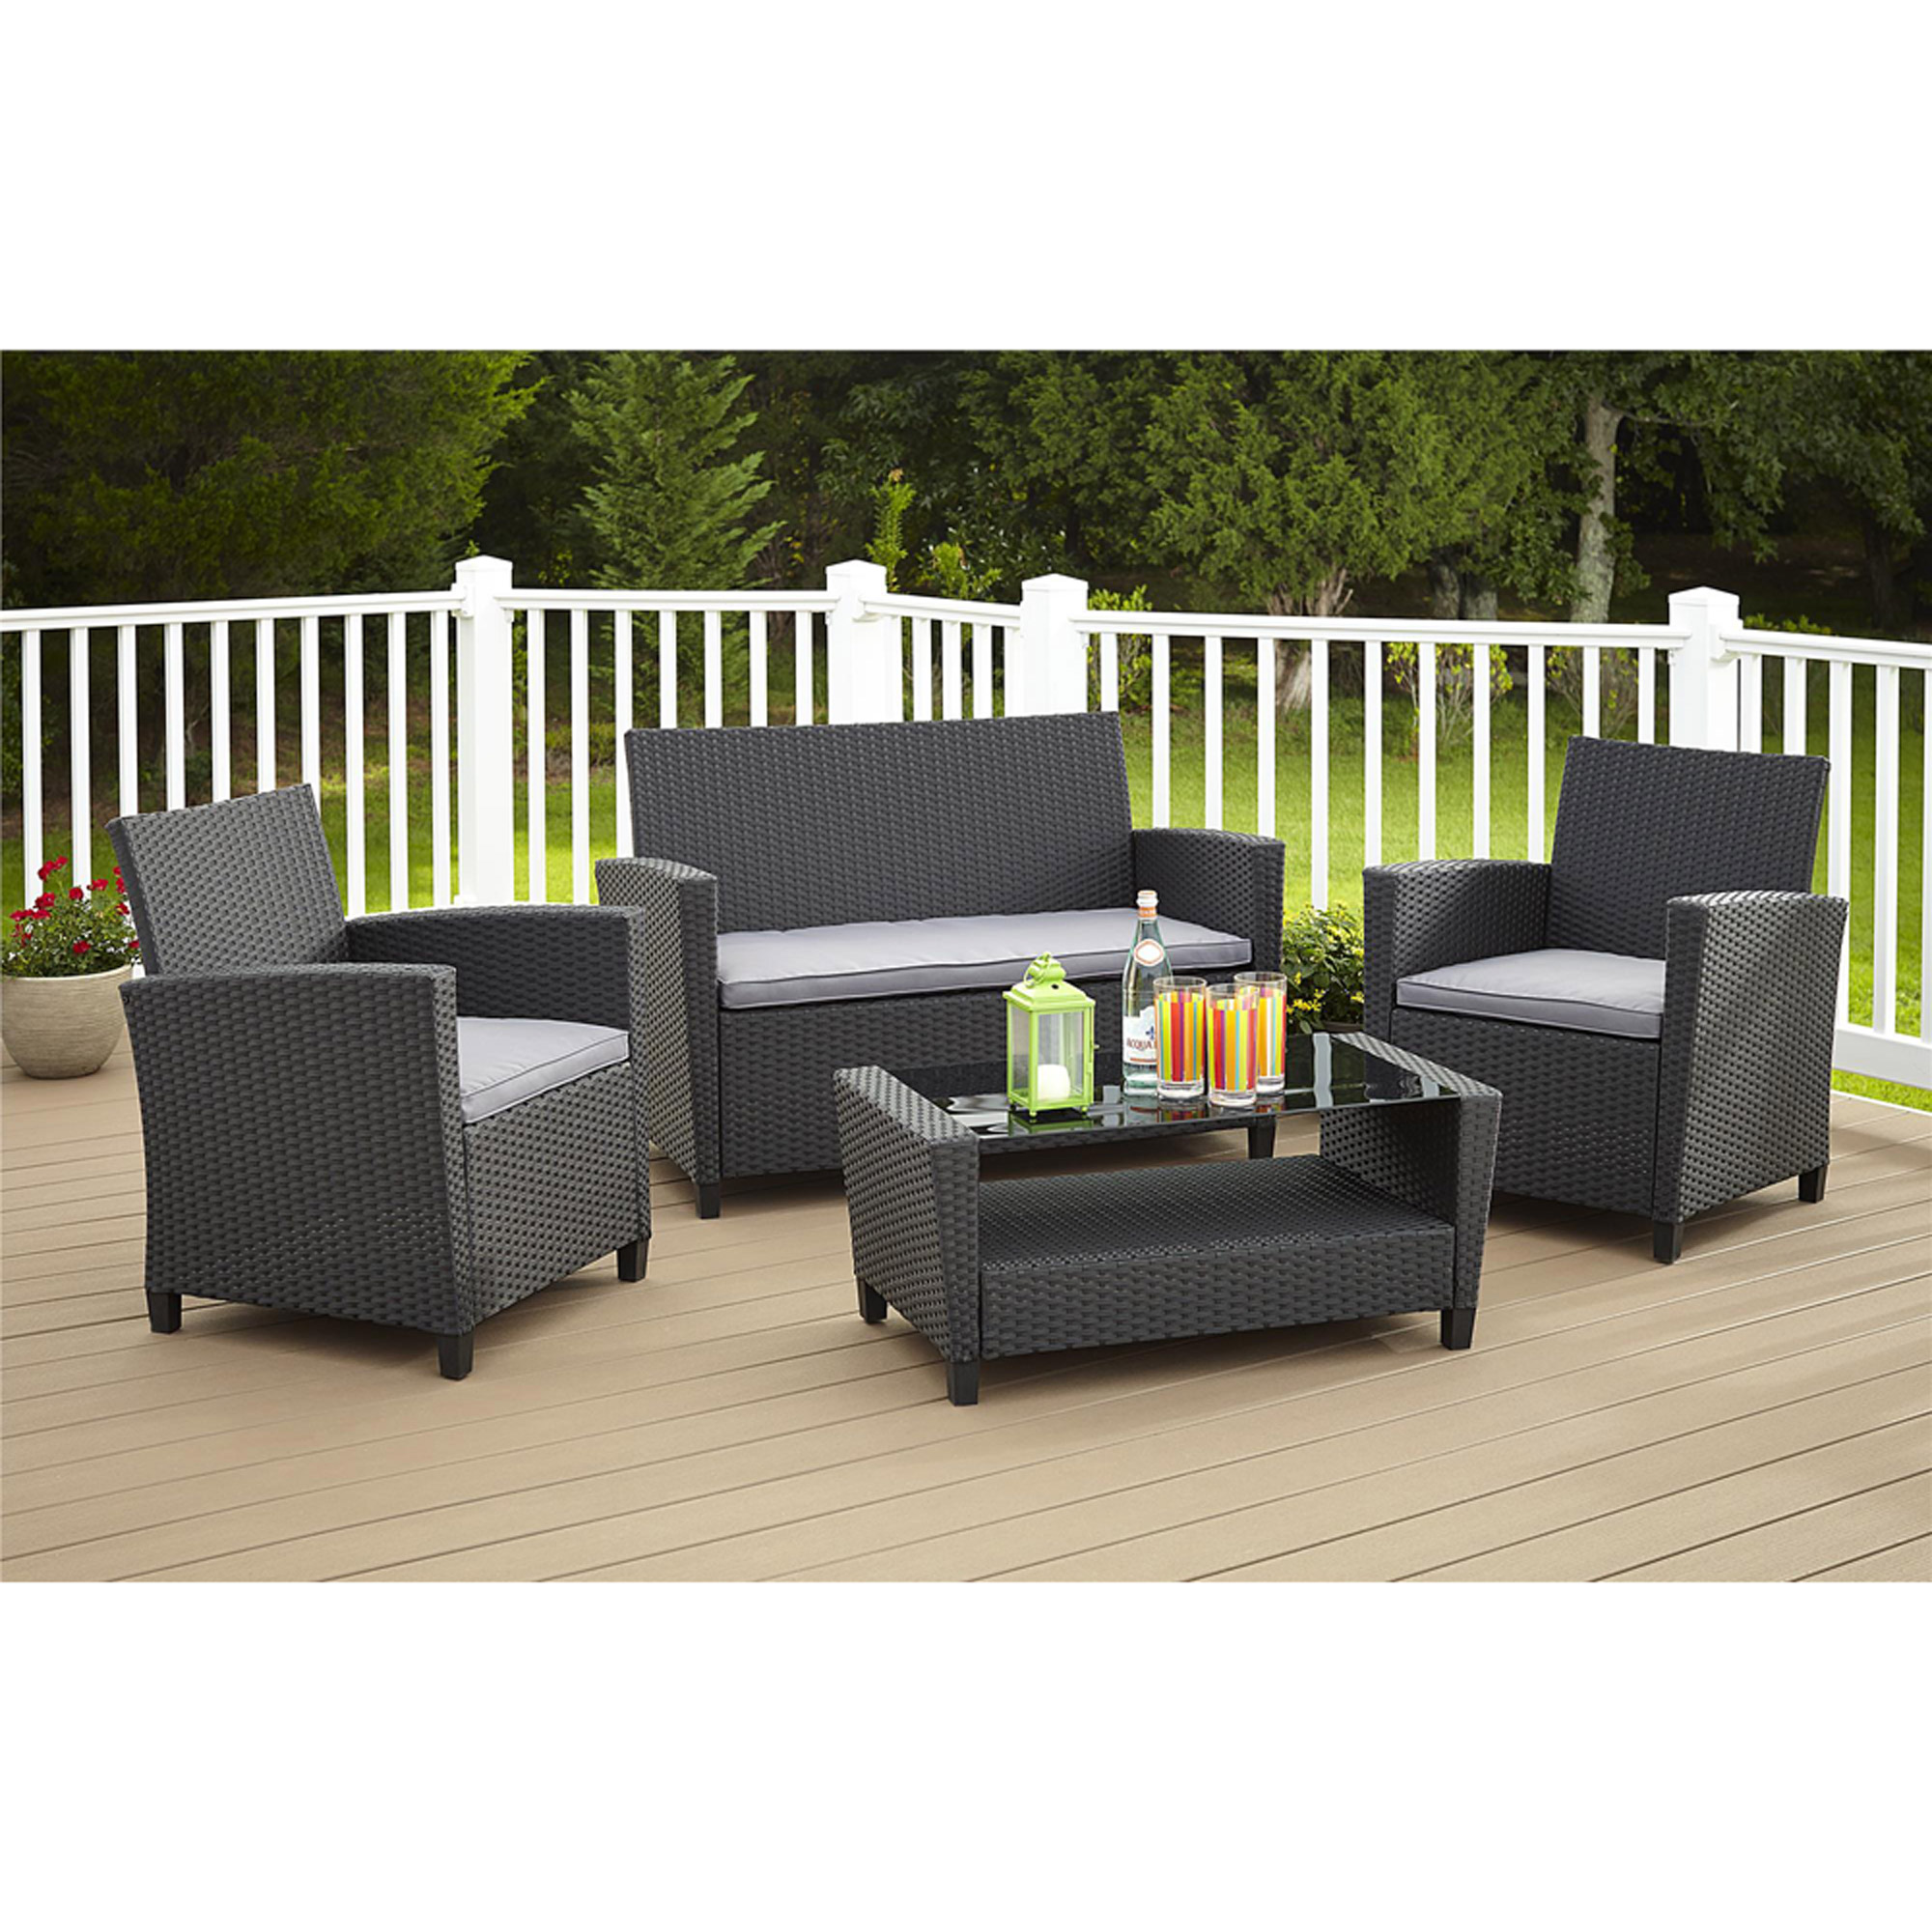 Outdoor Living Patio Furniture Walmart Com - Garden Furniture Clearance Warehouse